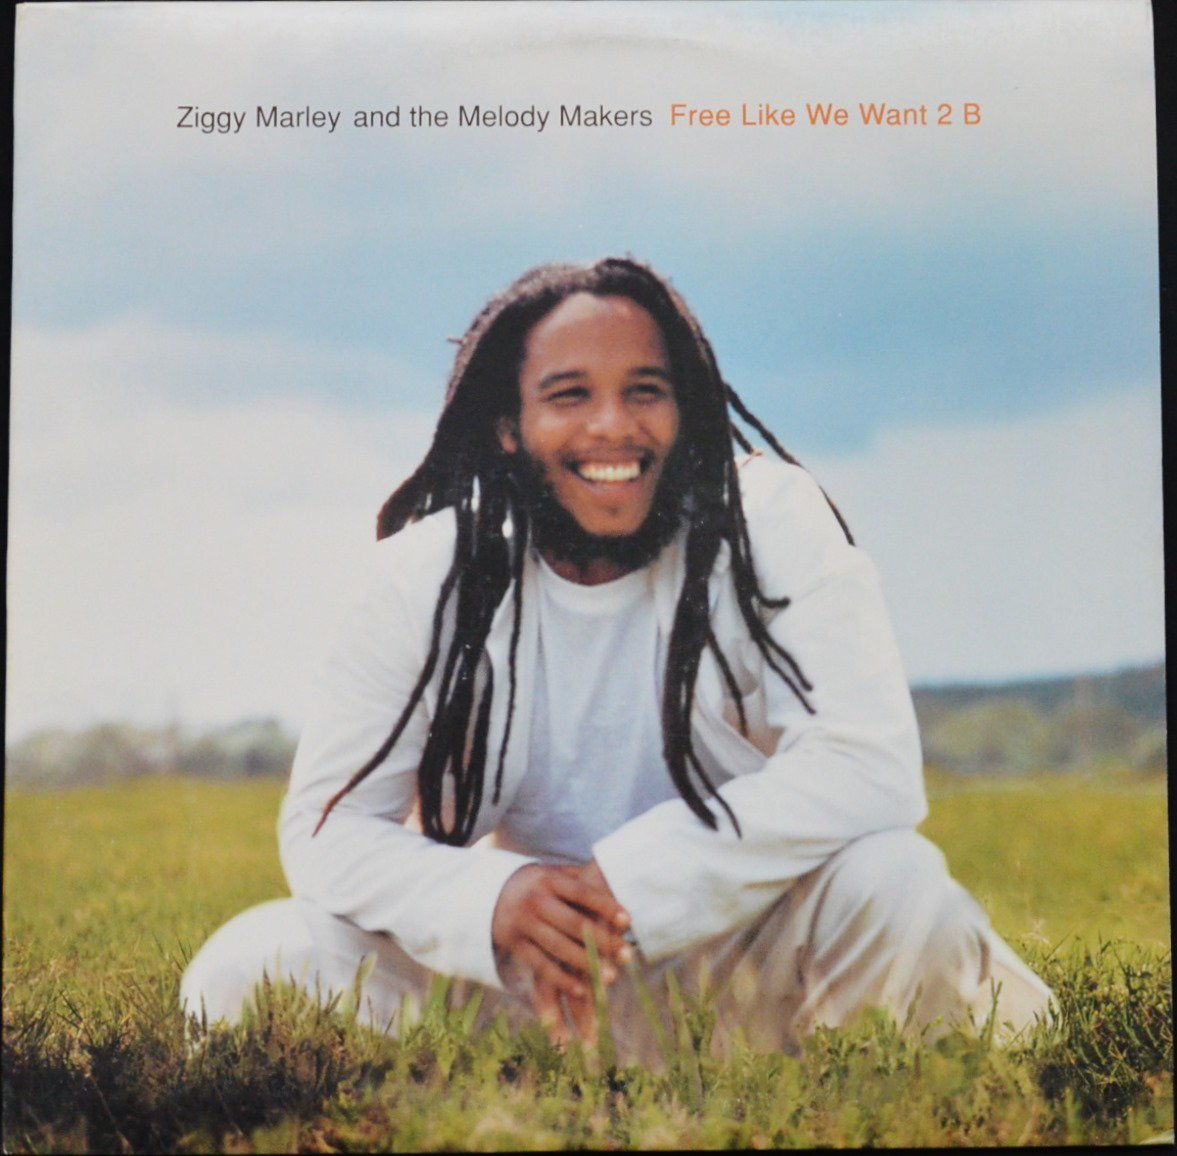 ZIGGY MARLEY AND THE MELODY MAKERS ‎/ FREE LIKE WE WANT 2 B (1LP)